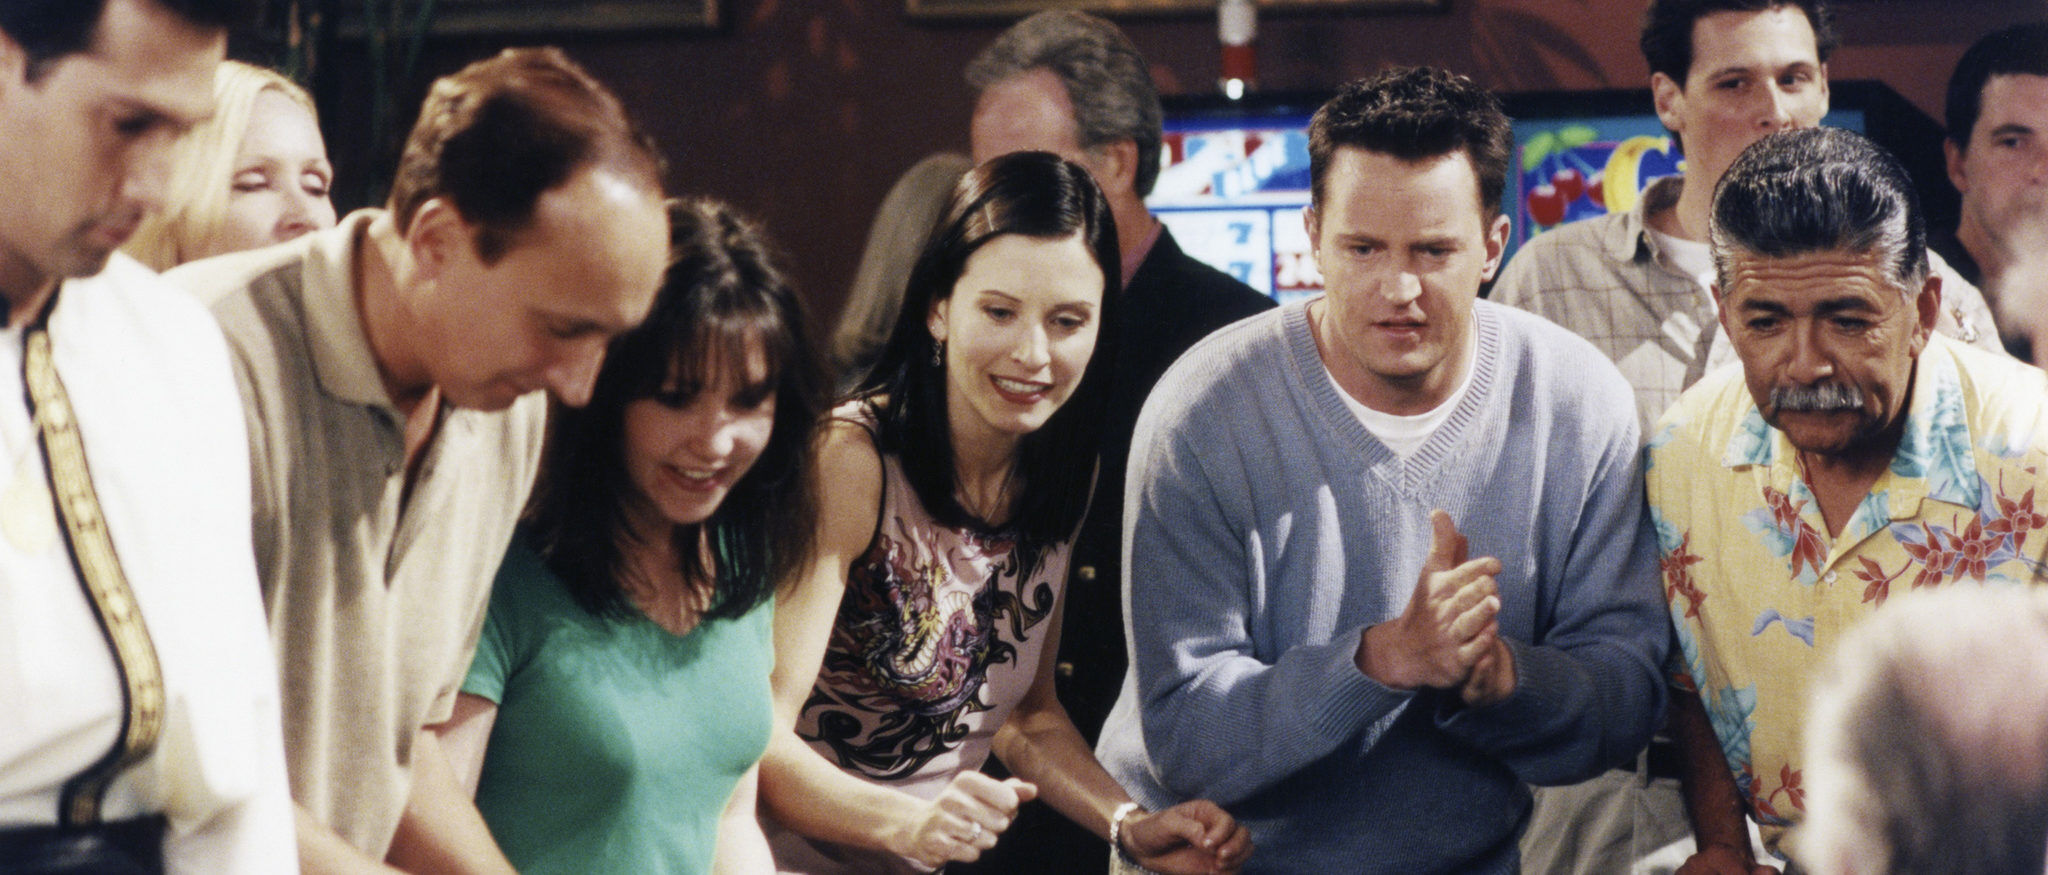 Friends Casino Episode TV Sitcom